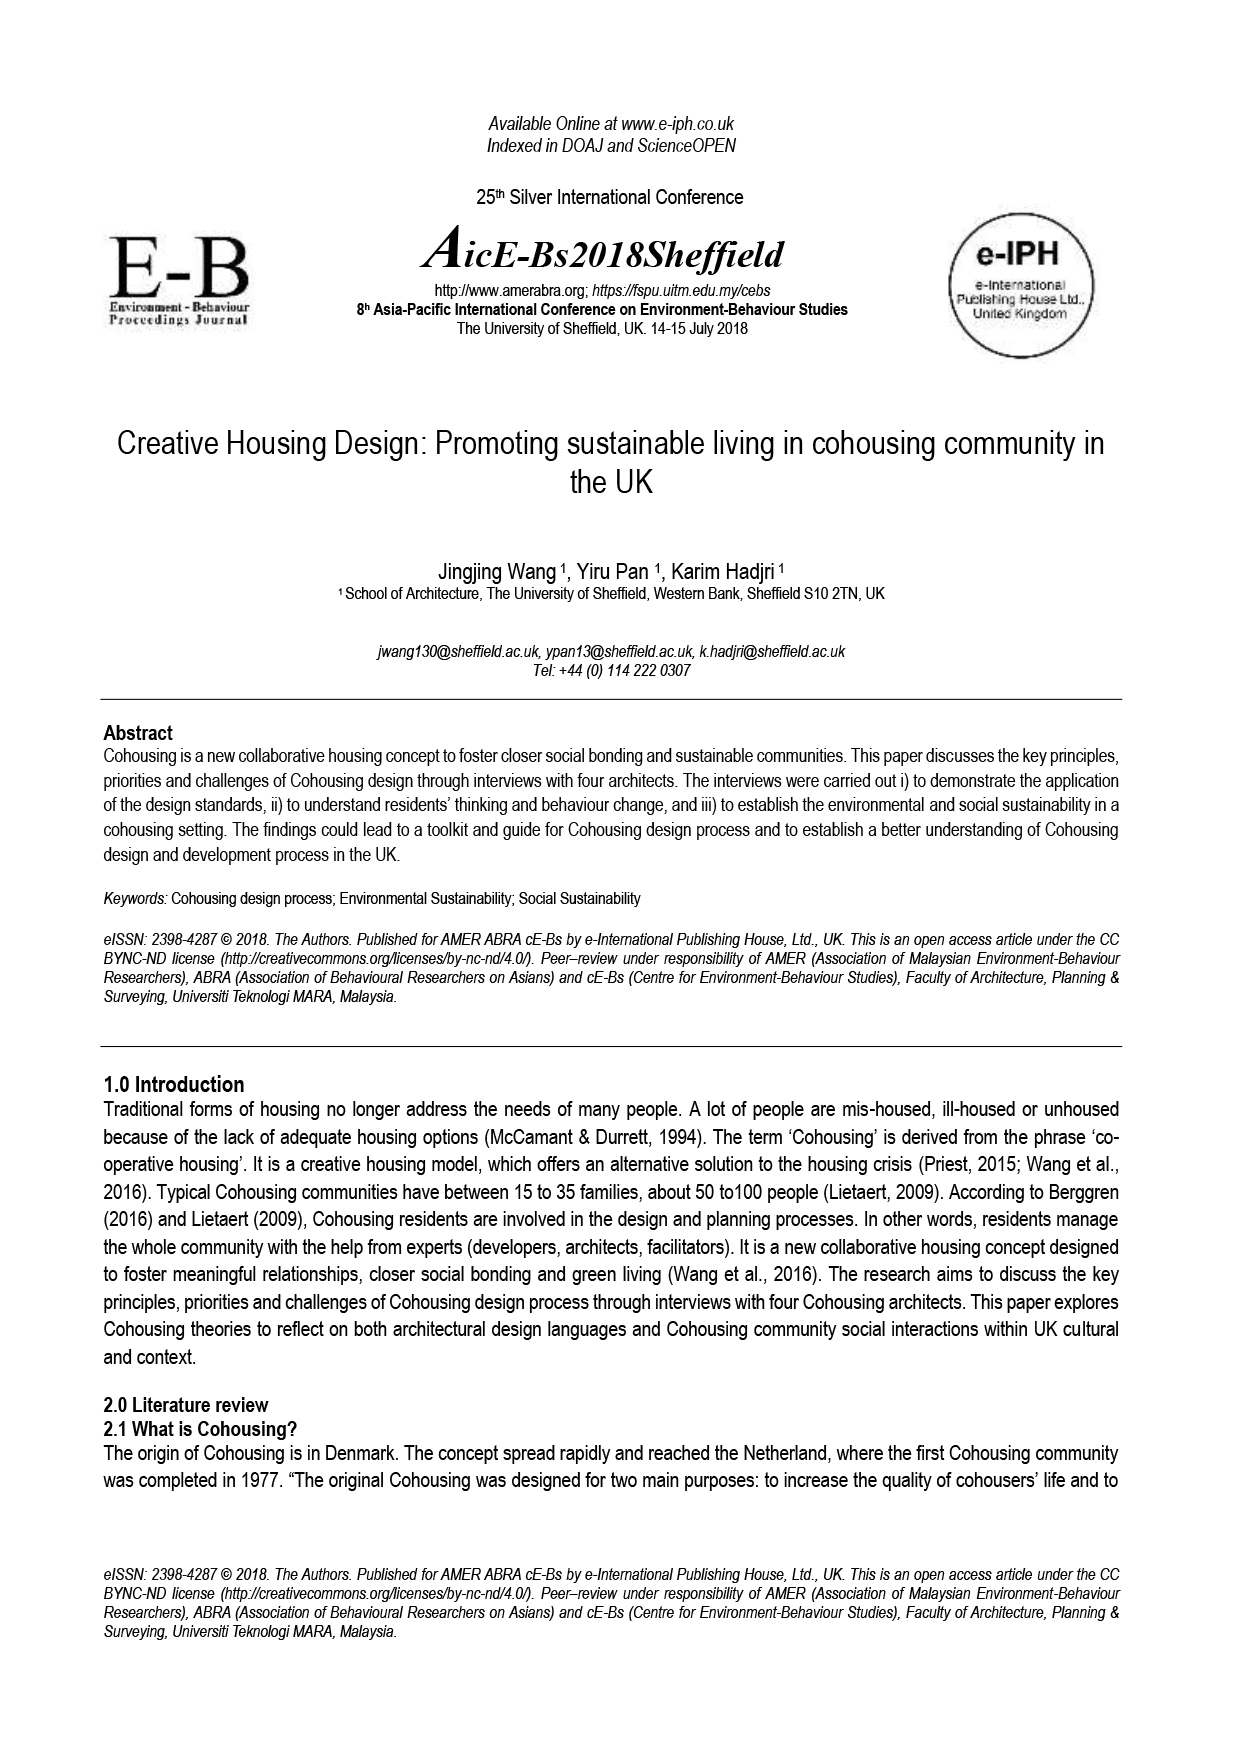 Creative Housing Design: Promoting sustainable living in cohousing community in the UK